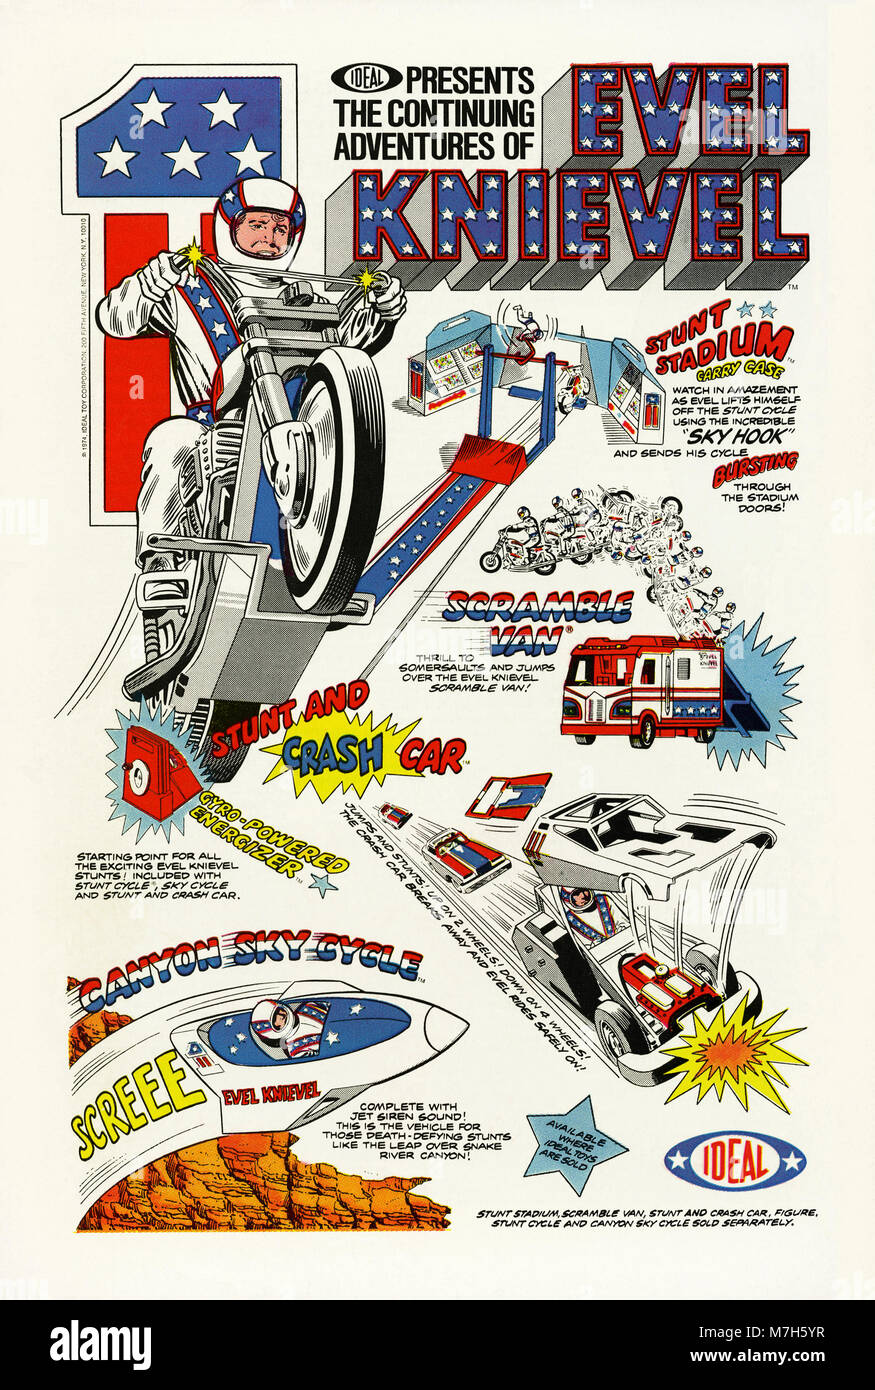 A 1974 USA advert for mechandising and toys based on the exploits of stuntman and daredevil Evel Knievel from Ideal - Stock Image